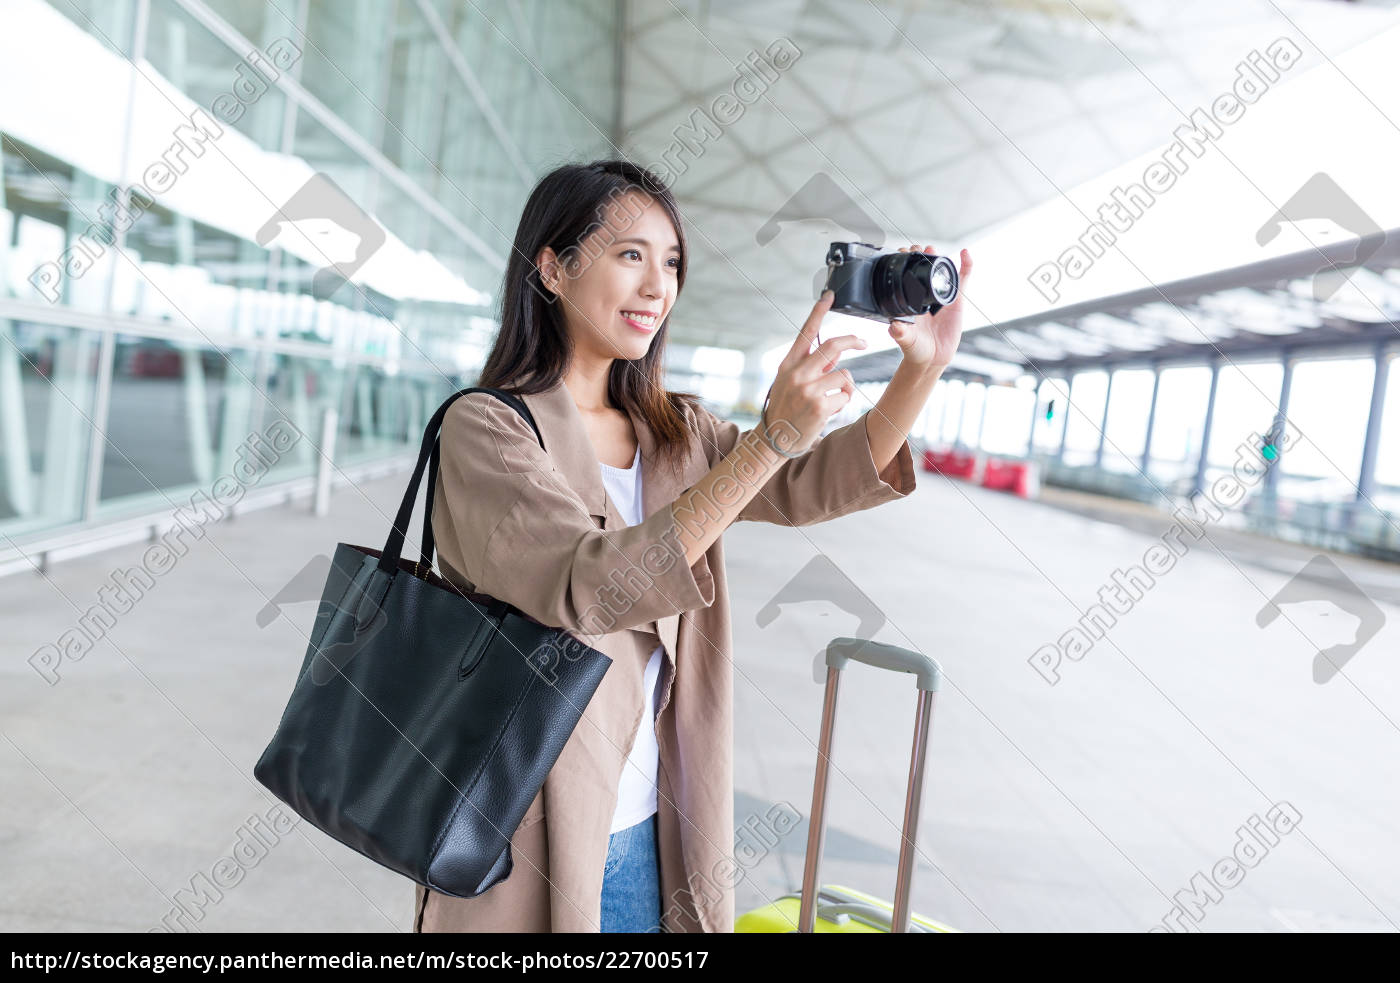 woman, taking, photo, with, digital, camera - 22700517